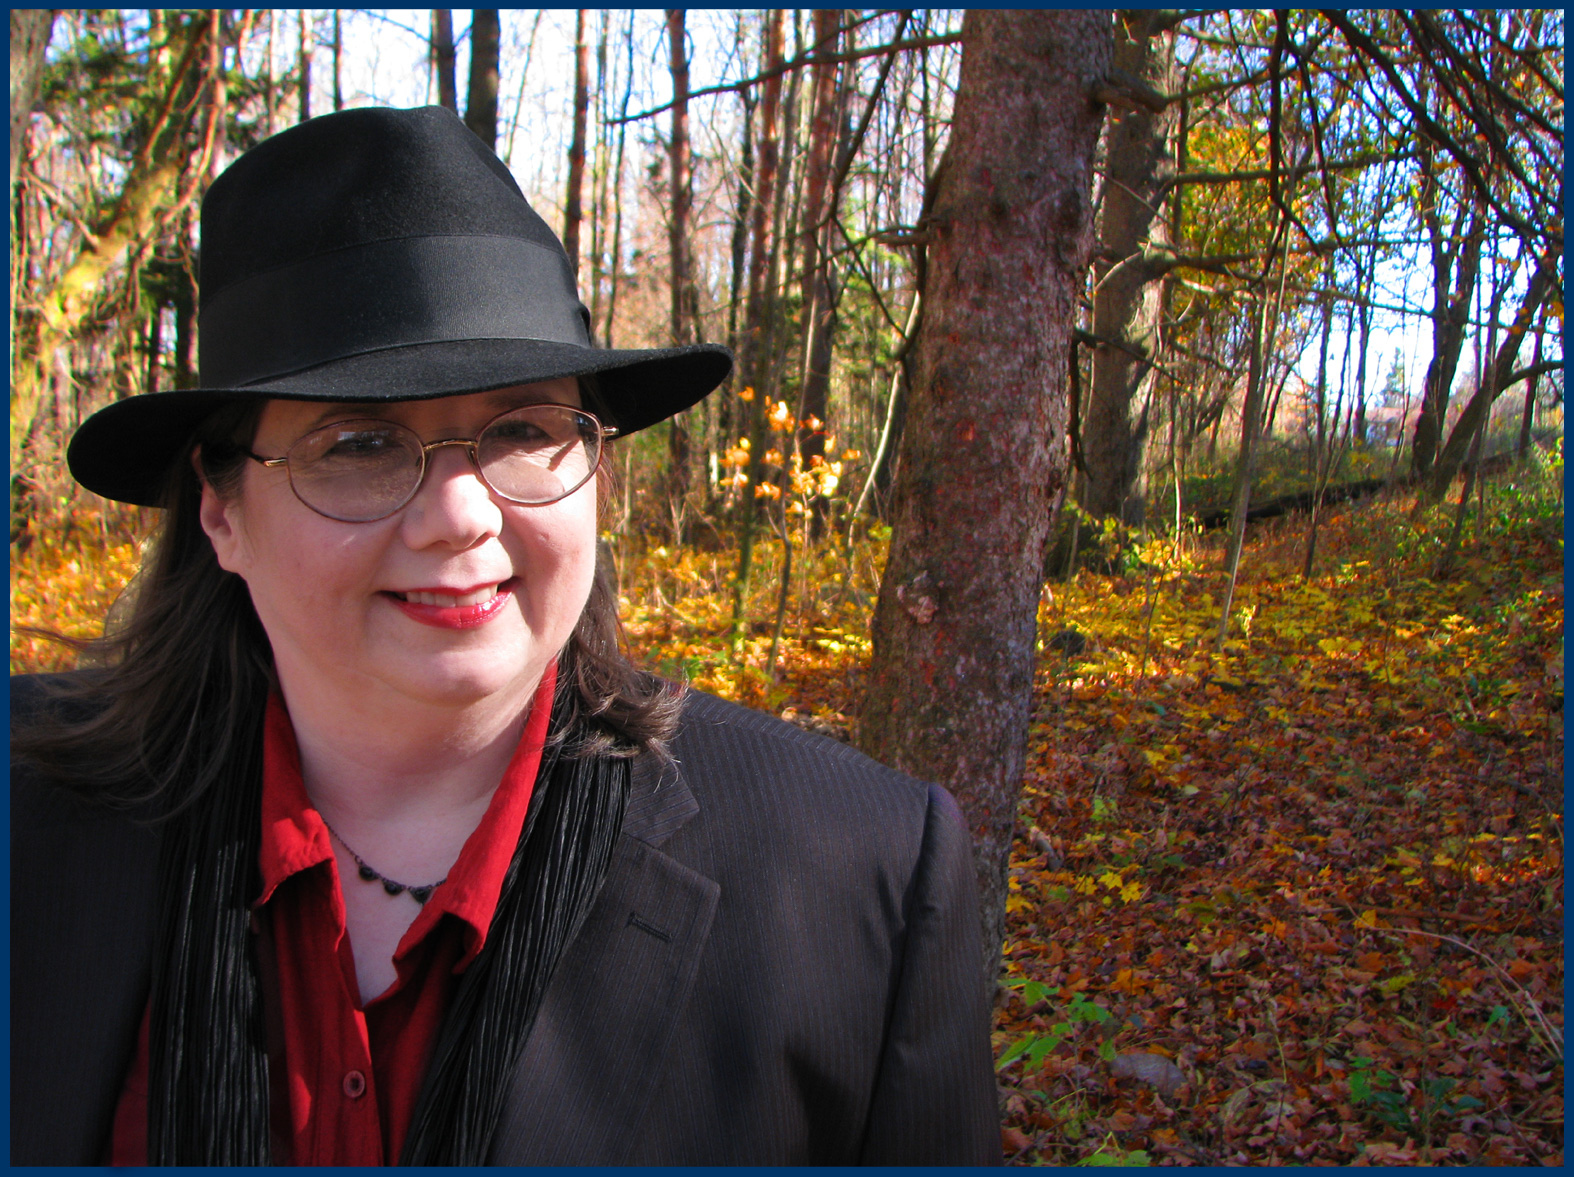 Laurel L. Russwurm, self publishing novelist